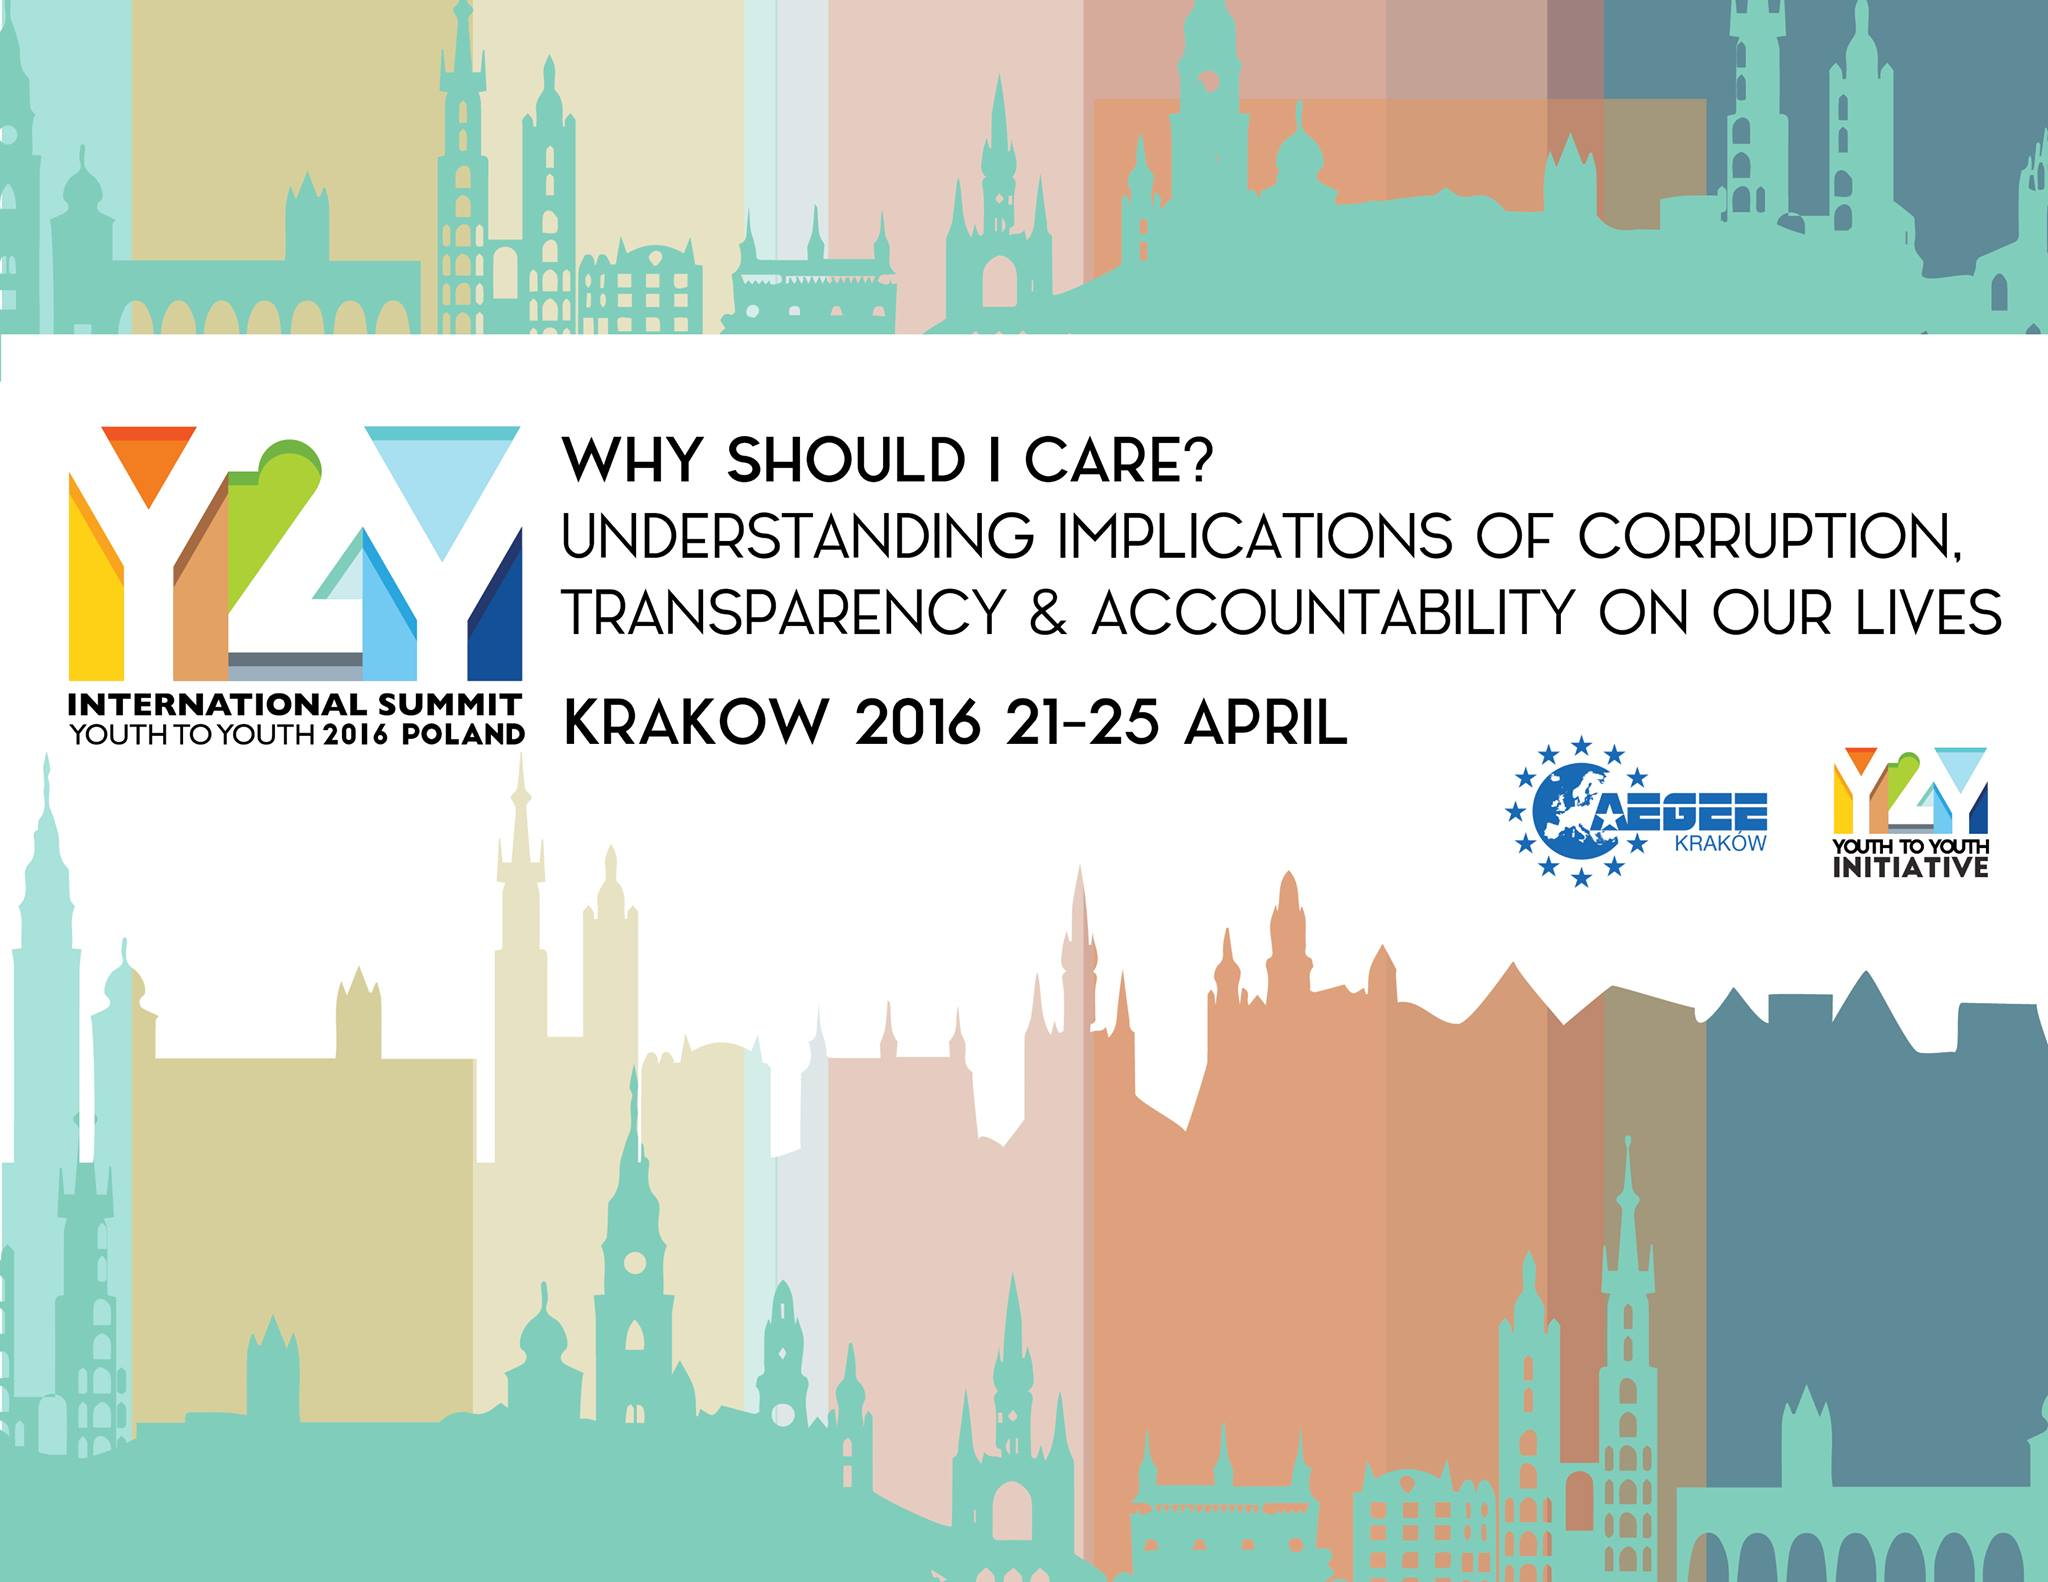 Y2Y SUMMIT 2016 POLAND